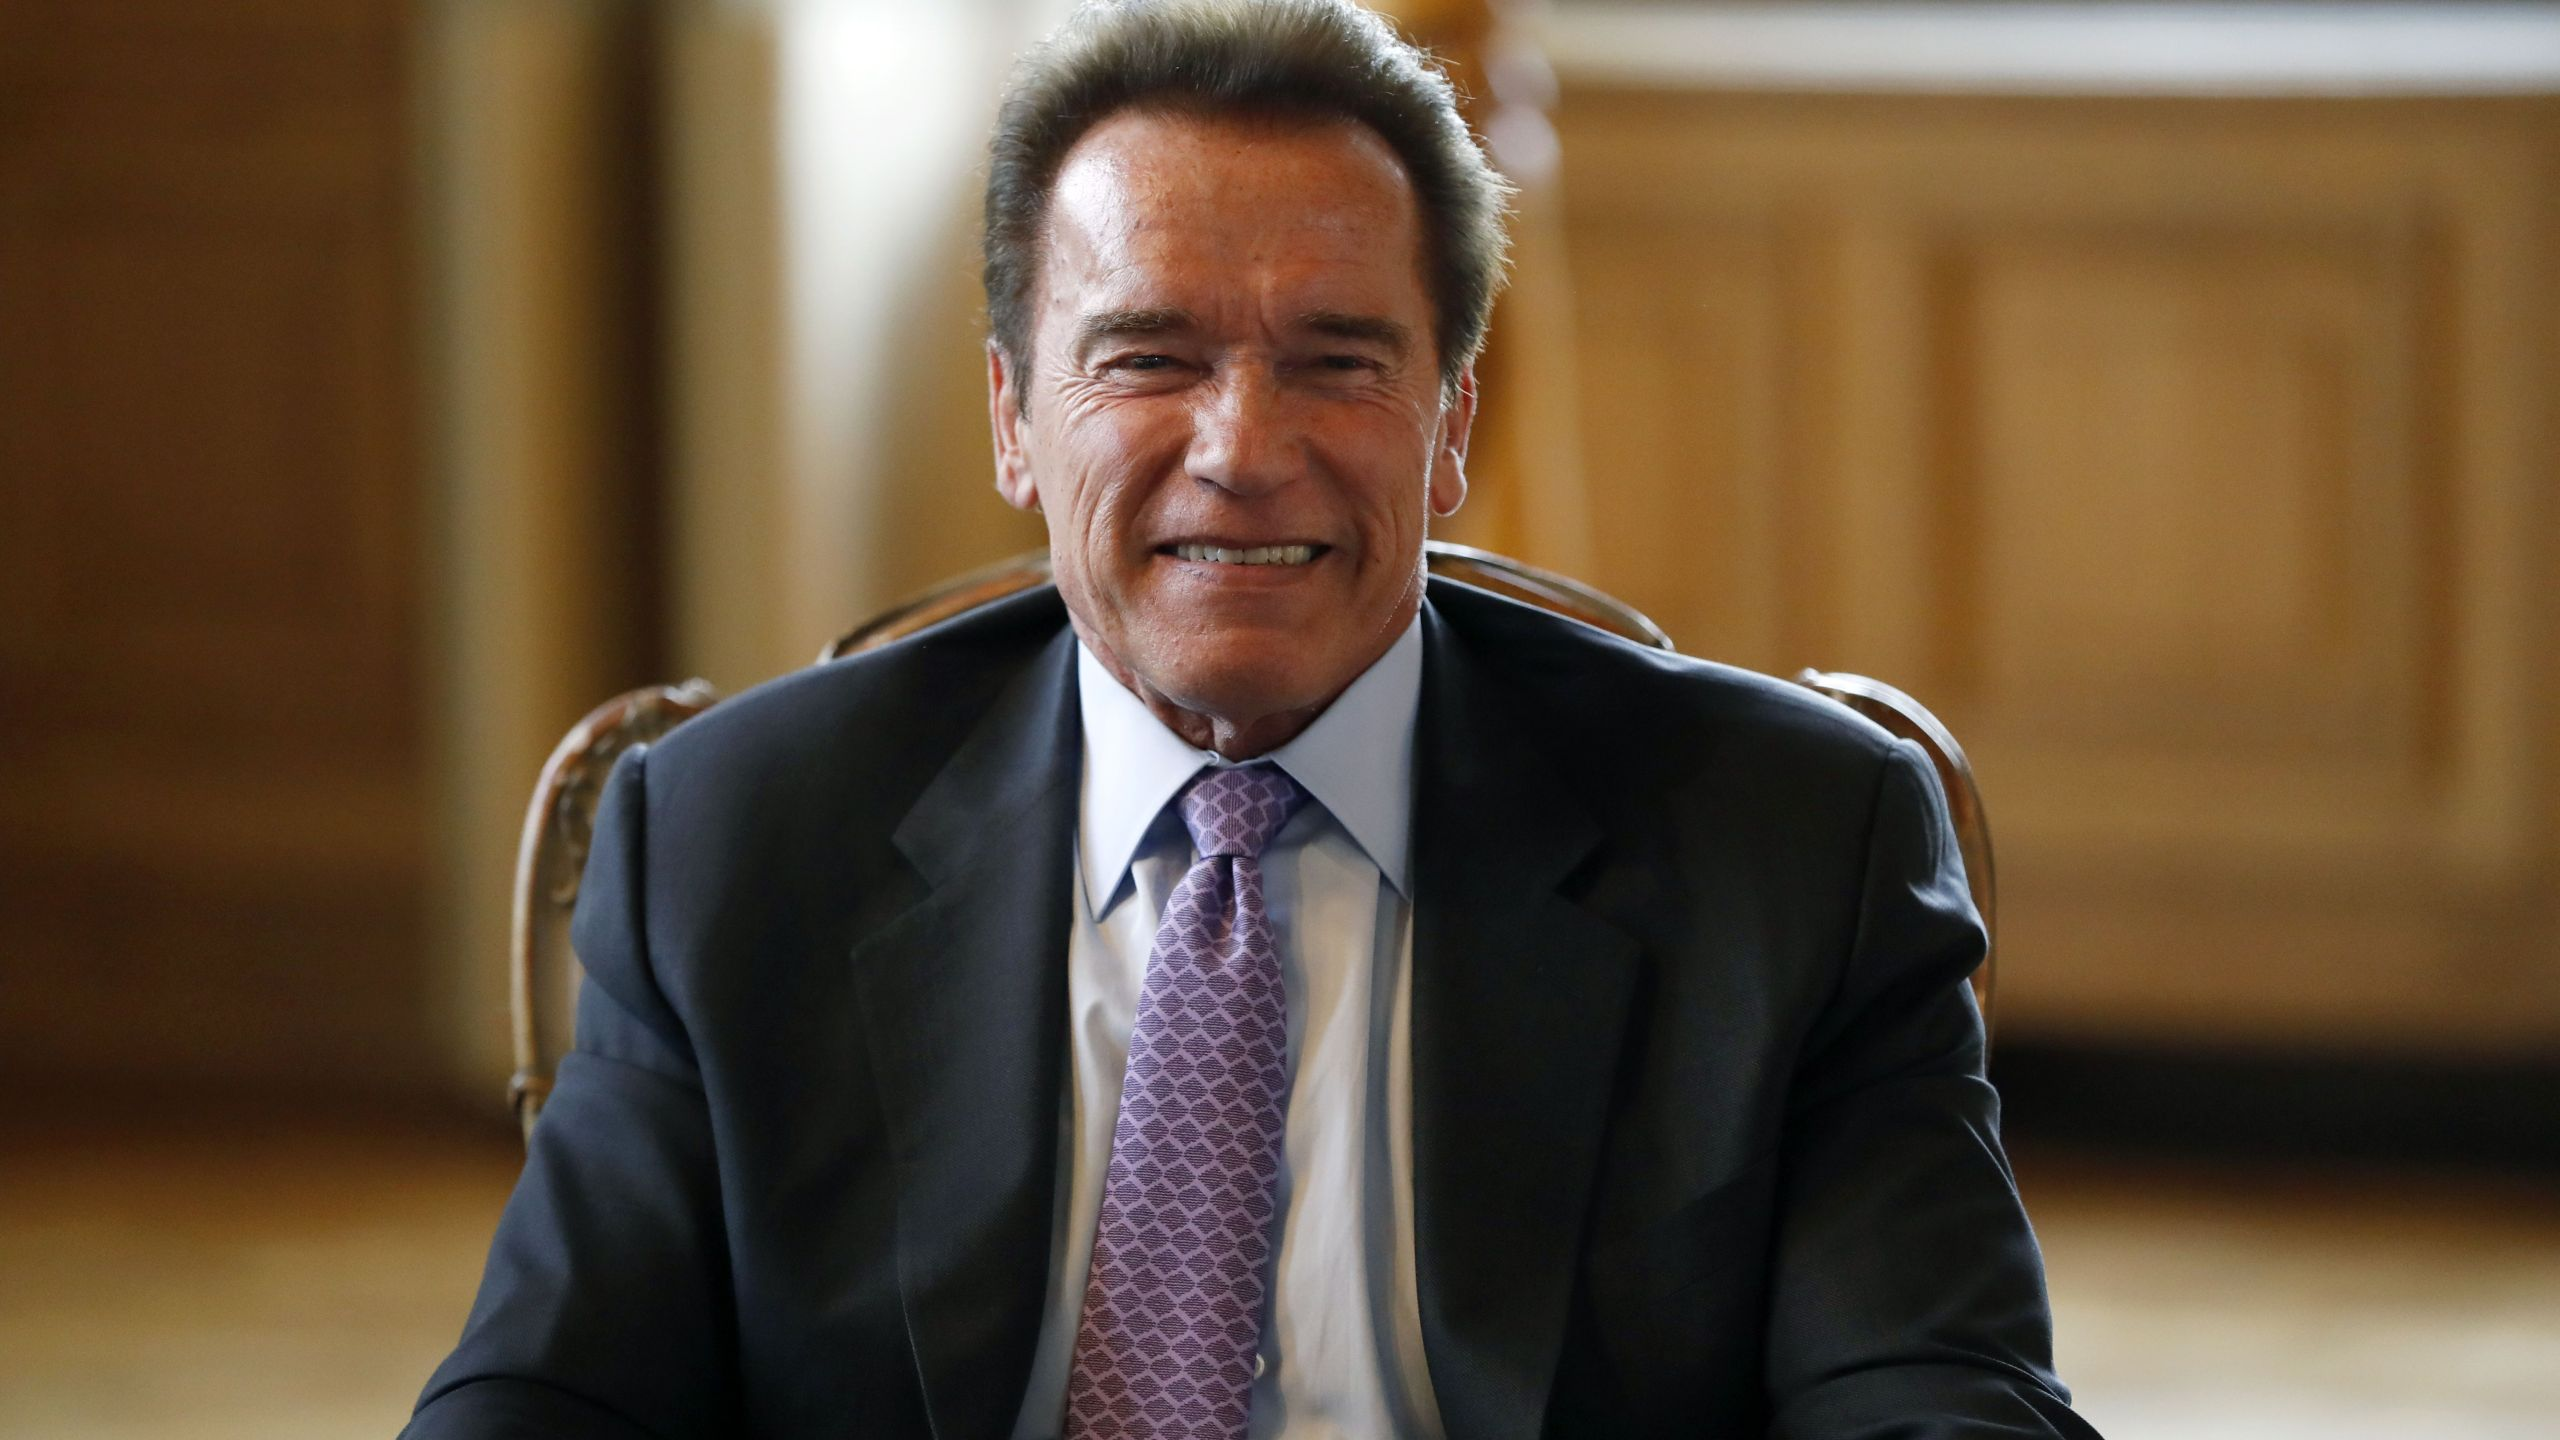 Arnold Schwarzenegger meets with the mayor of Paris on April 28, 2017, in Paris to sign a convention for cooperation between the C40 Cities Climate Leadership Group and the R20 organization. (Credit: PATRICK KOVARIK/AFP/Getty Images)